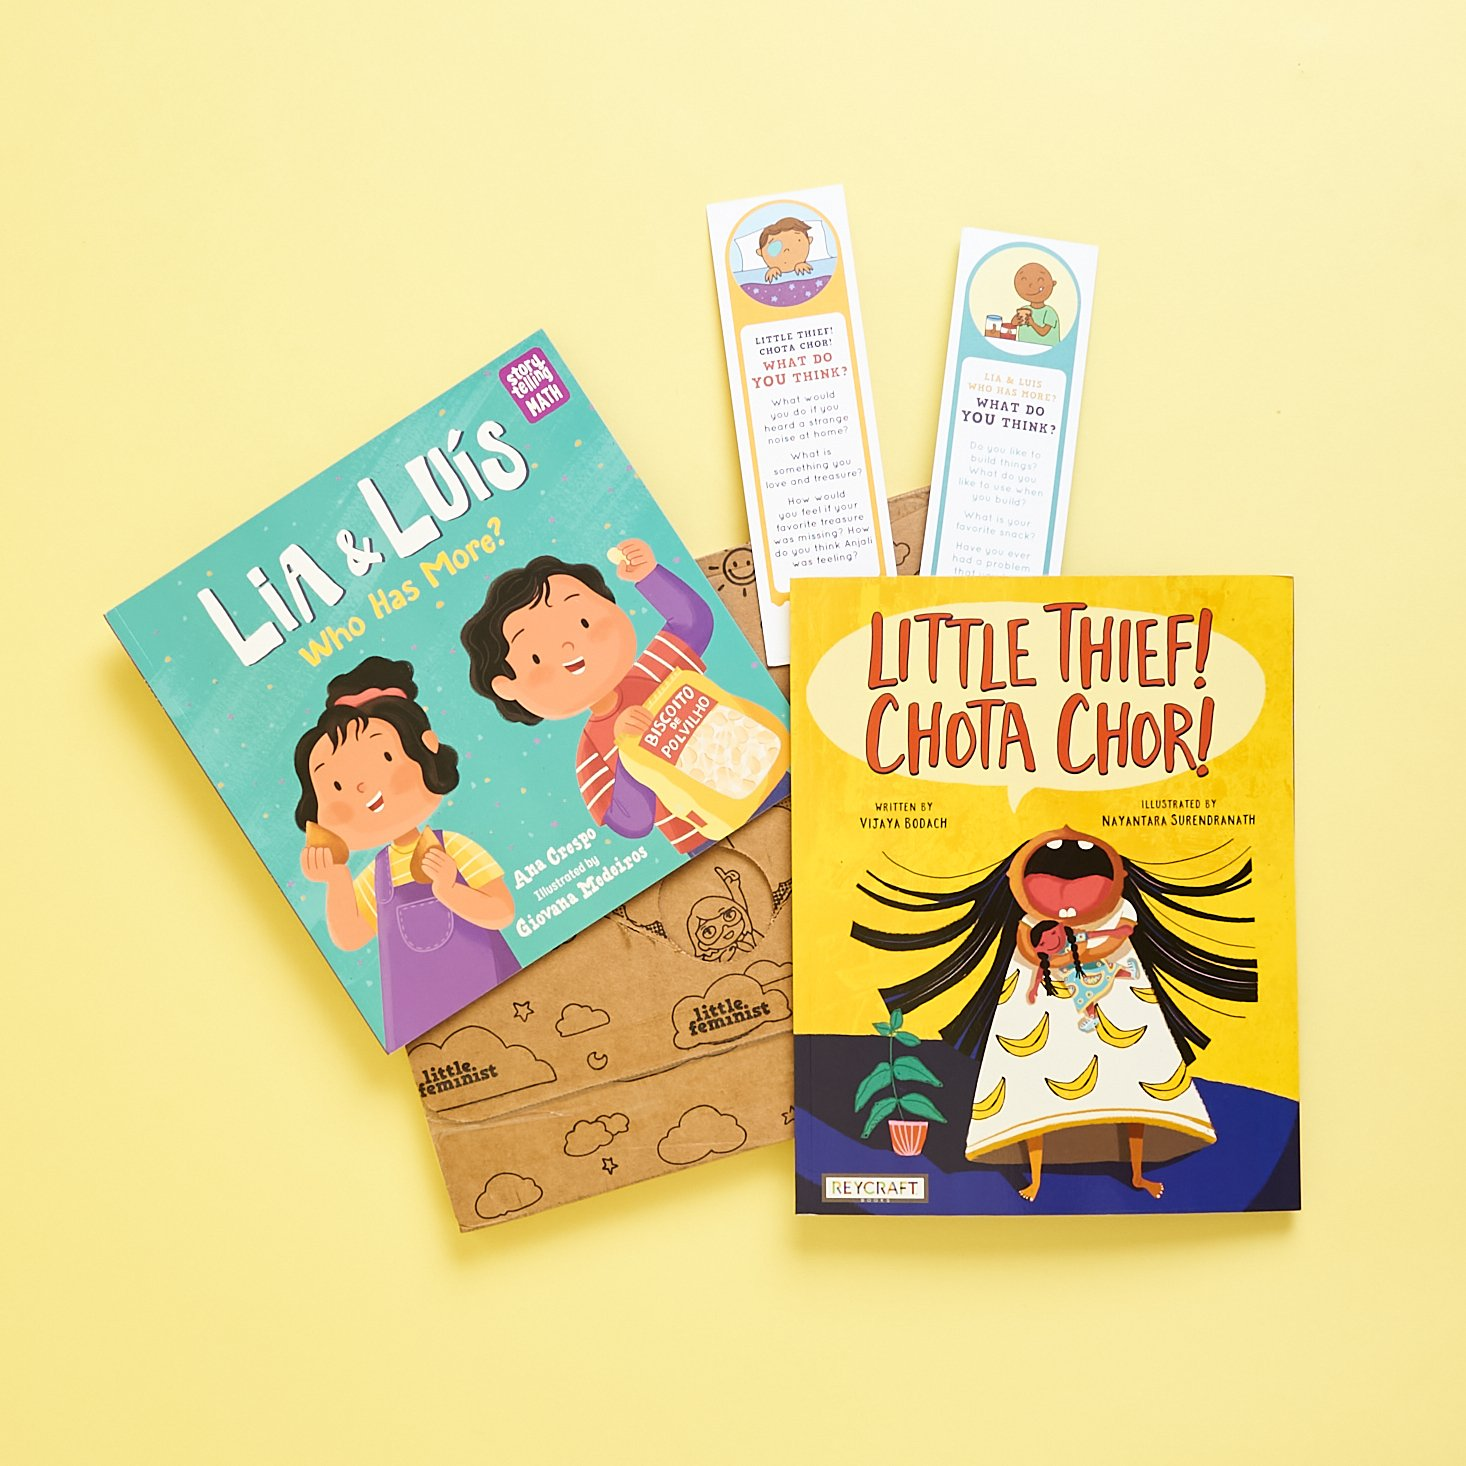 Little Feminist Book Club Ages 2-4 September 2021 Review + Coupon